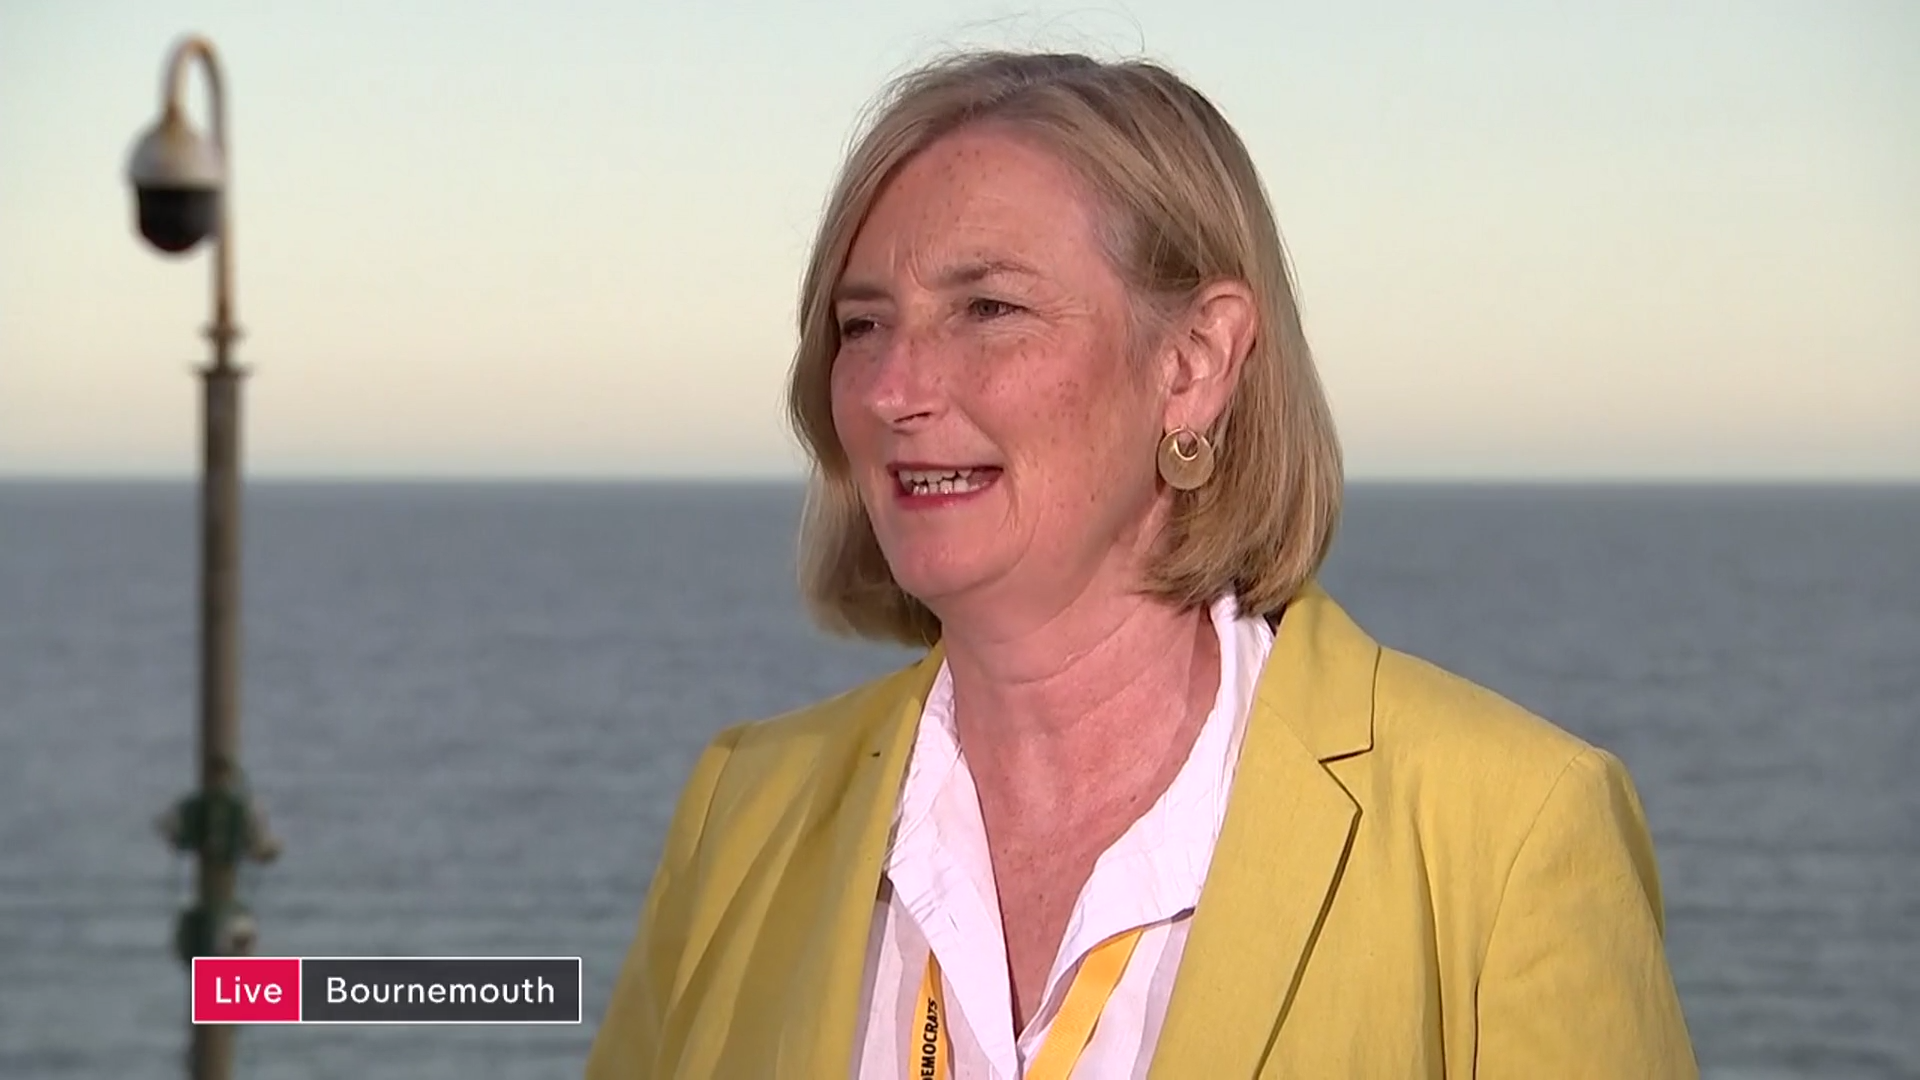 Sarah Wallaston MP: 'I know there are a lot of very unhappy Conservative colleagues'